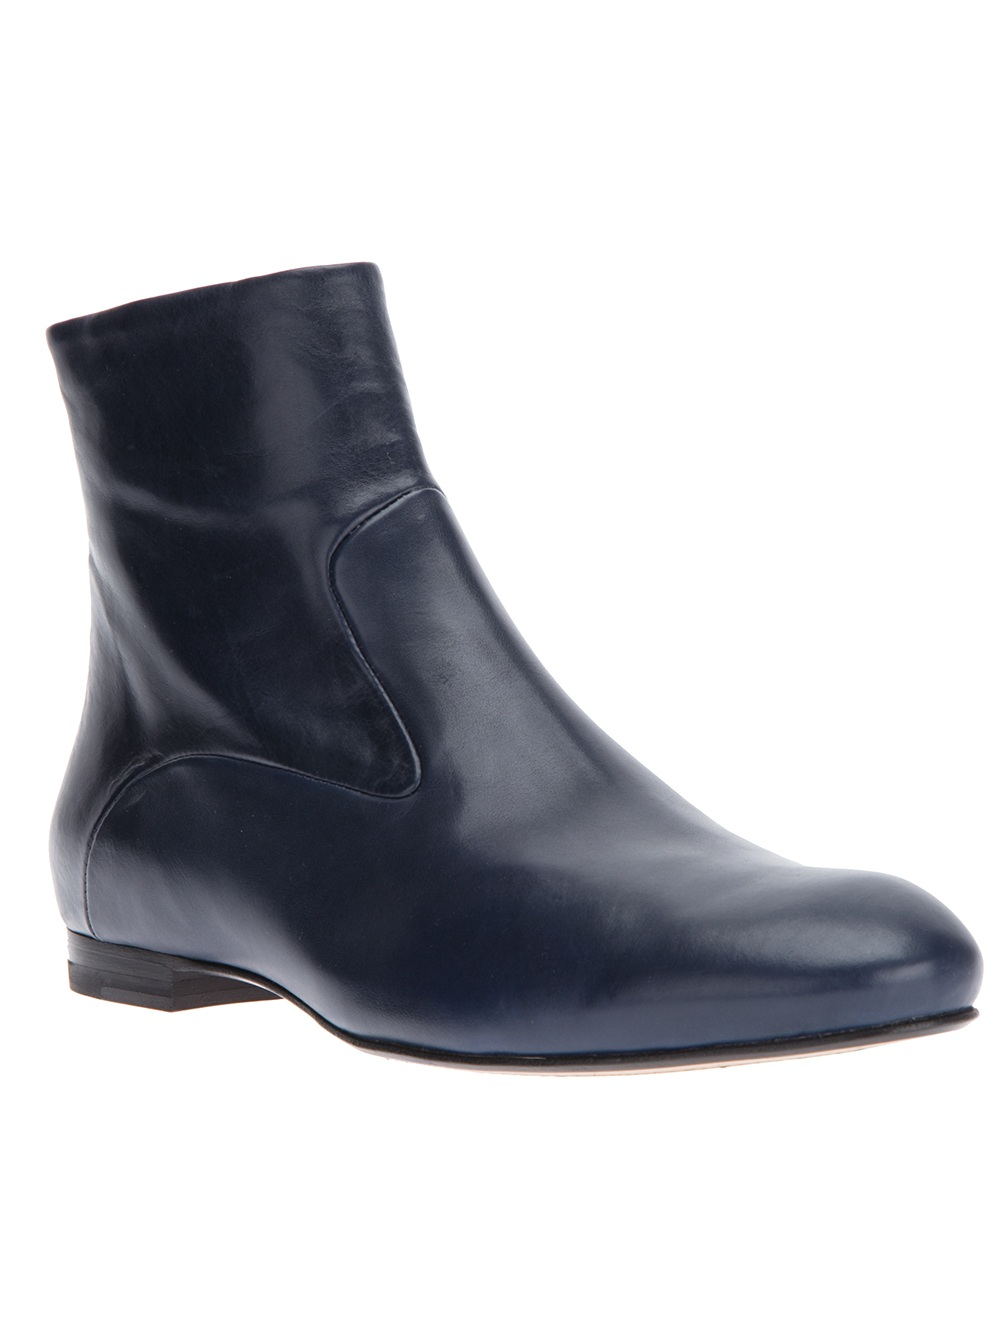 blue ankle boots for women